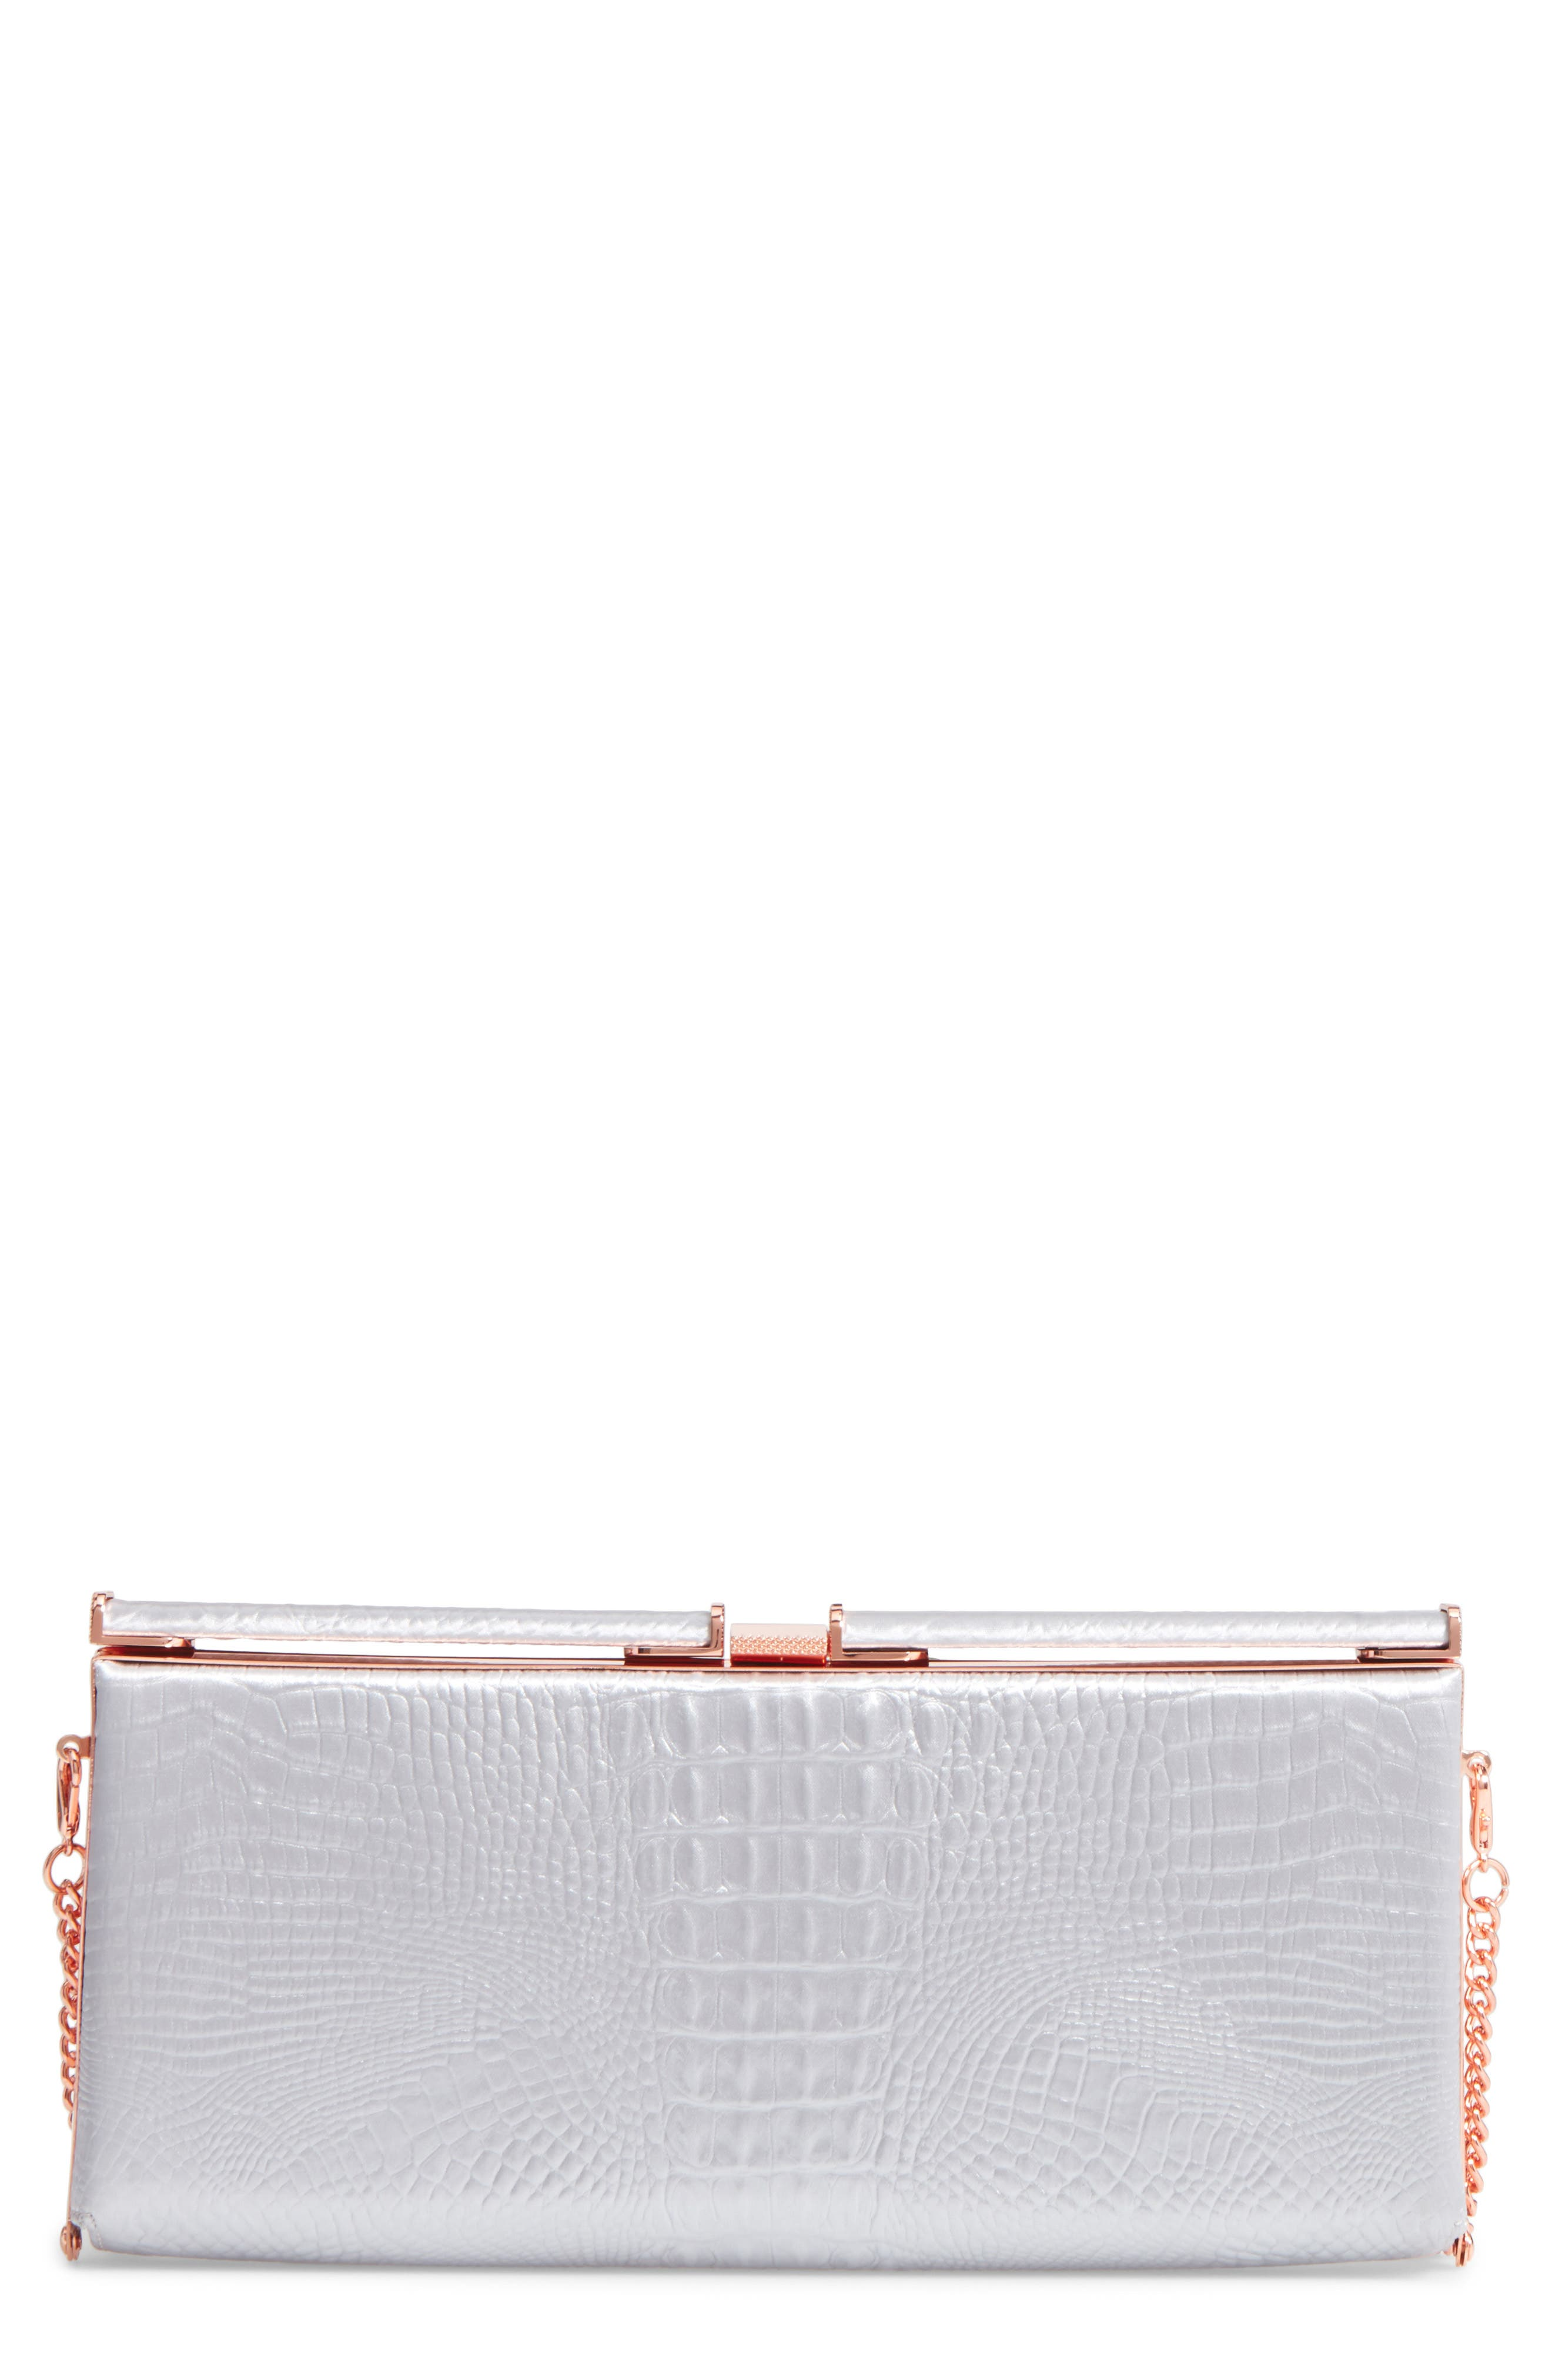 Ted Baker Darciee Embossed Frame Clutch,                             Main thumbnail 1, color,                             050